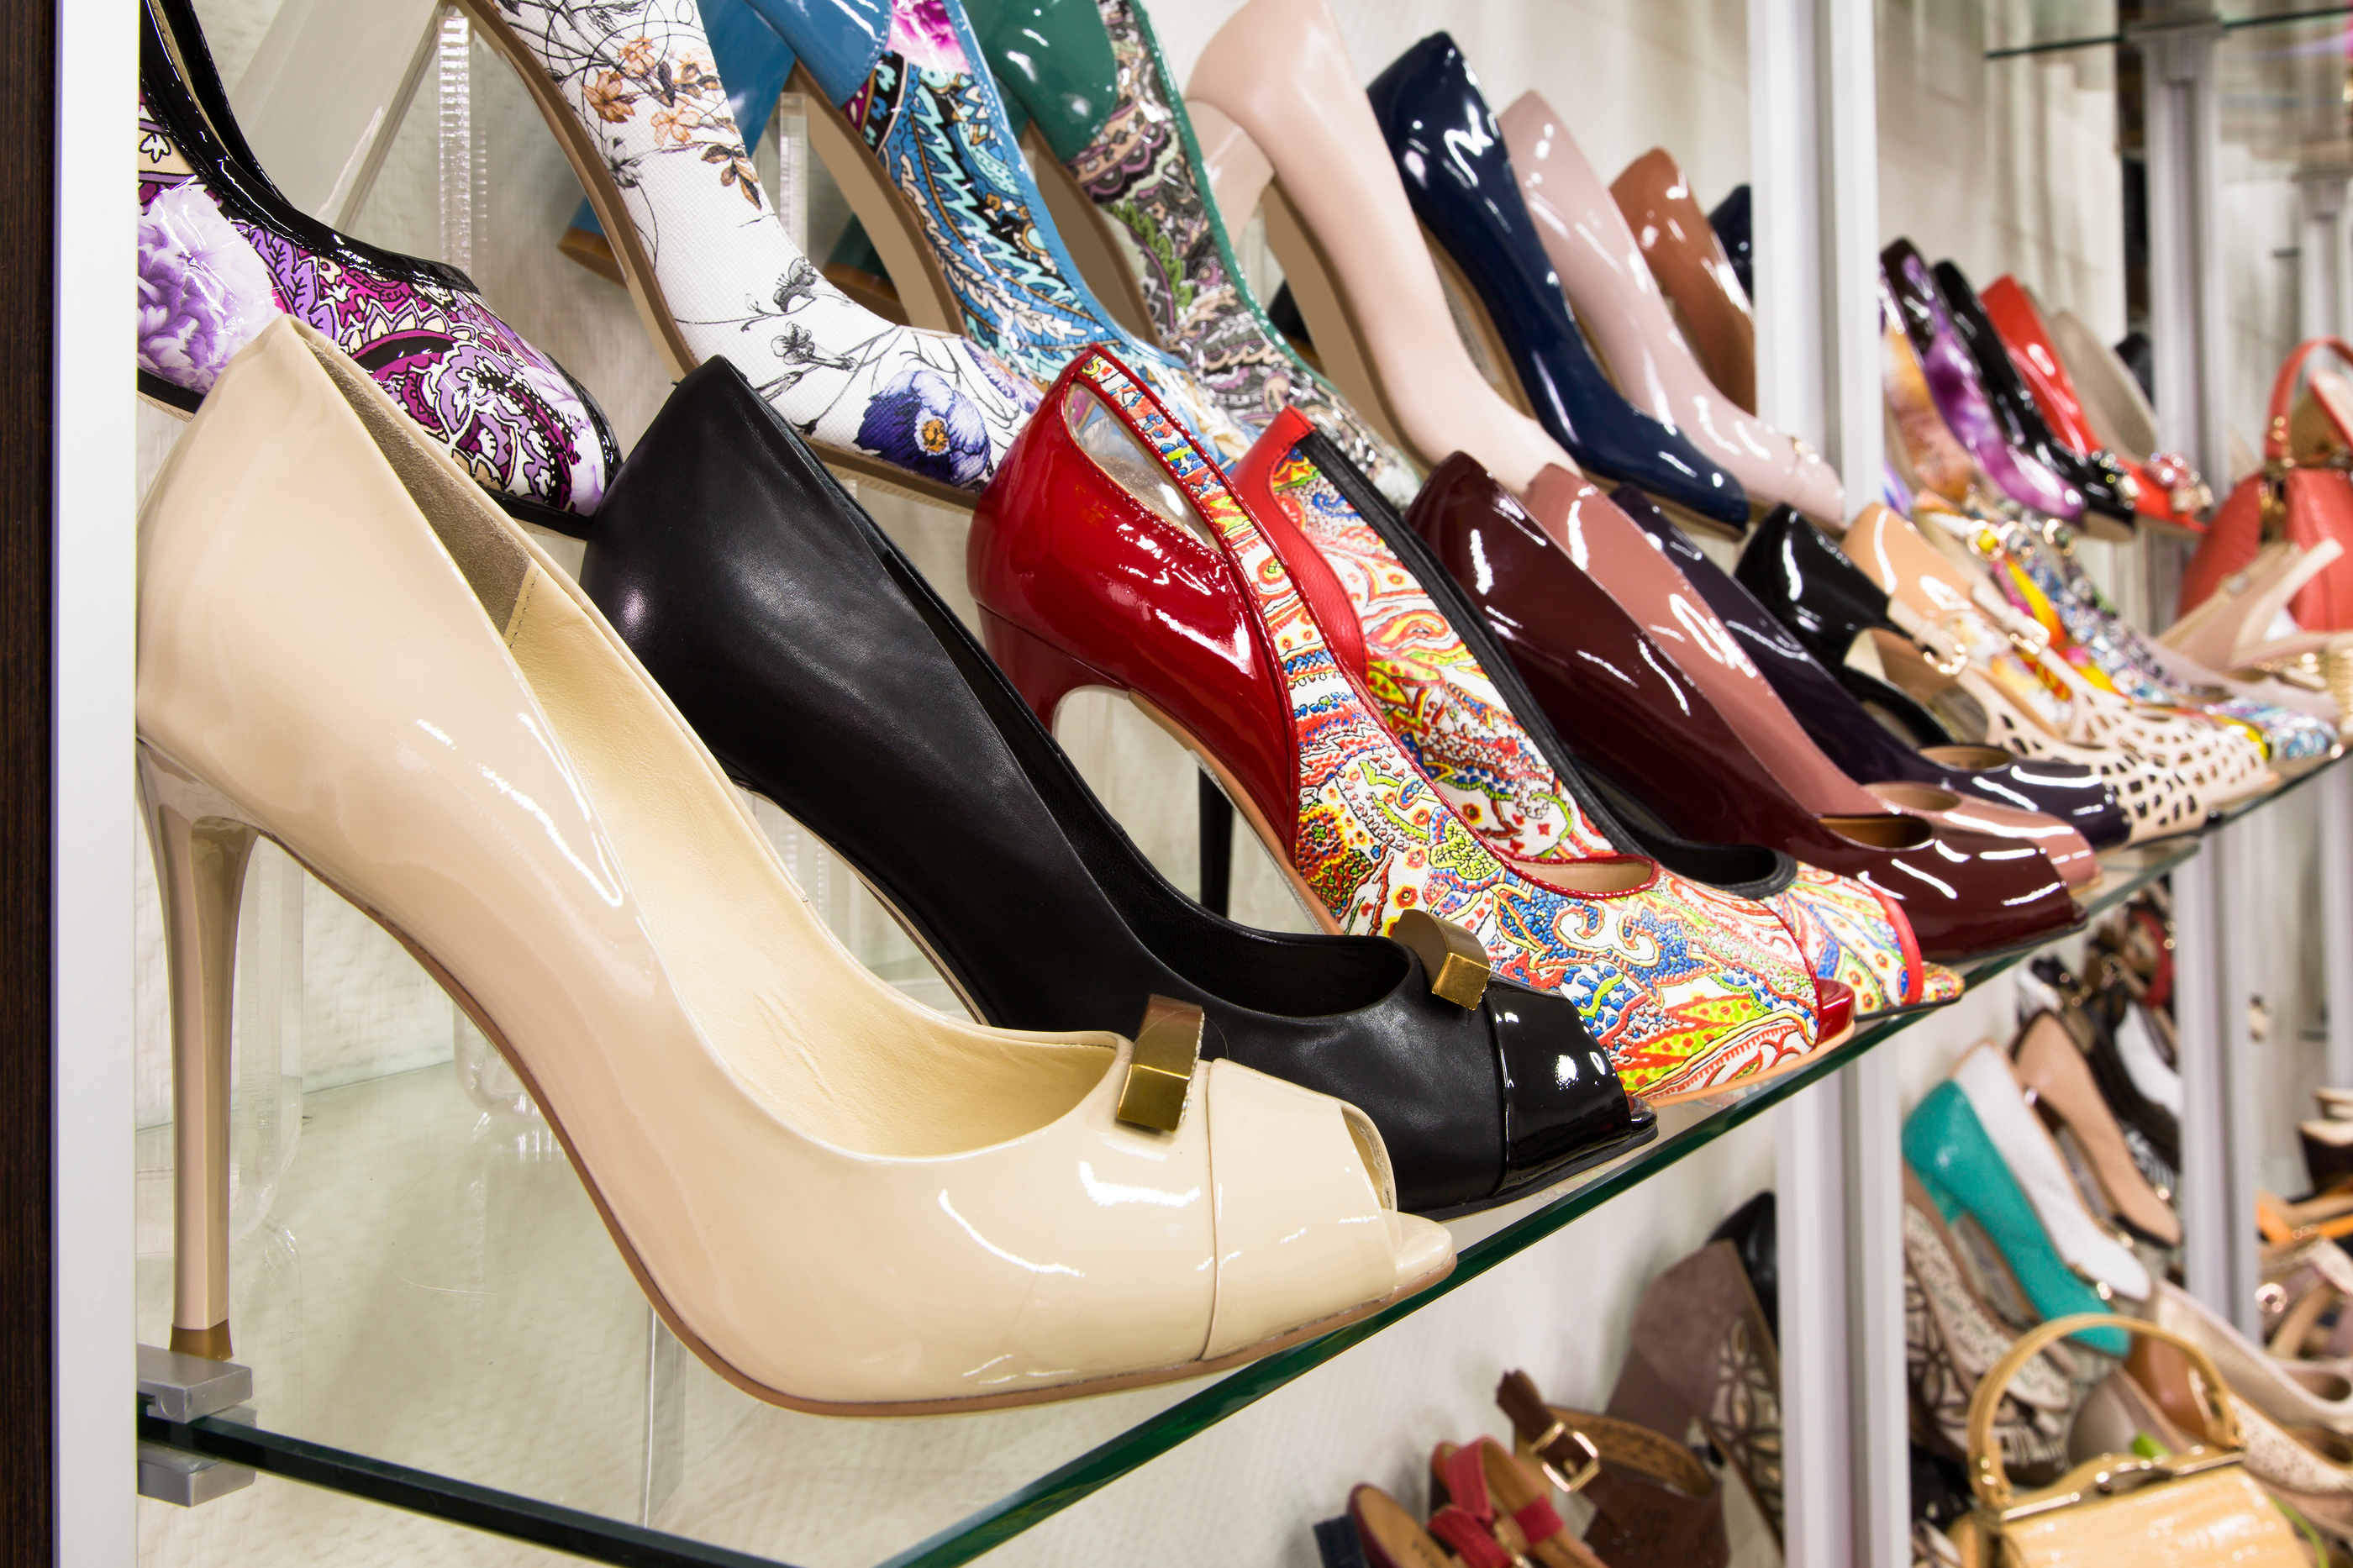 Rows of beautiful elegant colored women's shoes on store shelves.